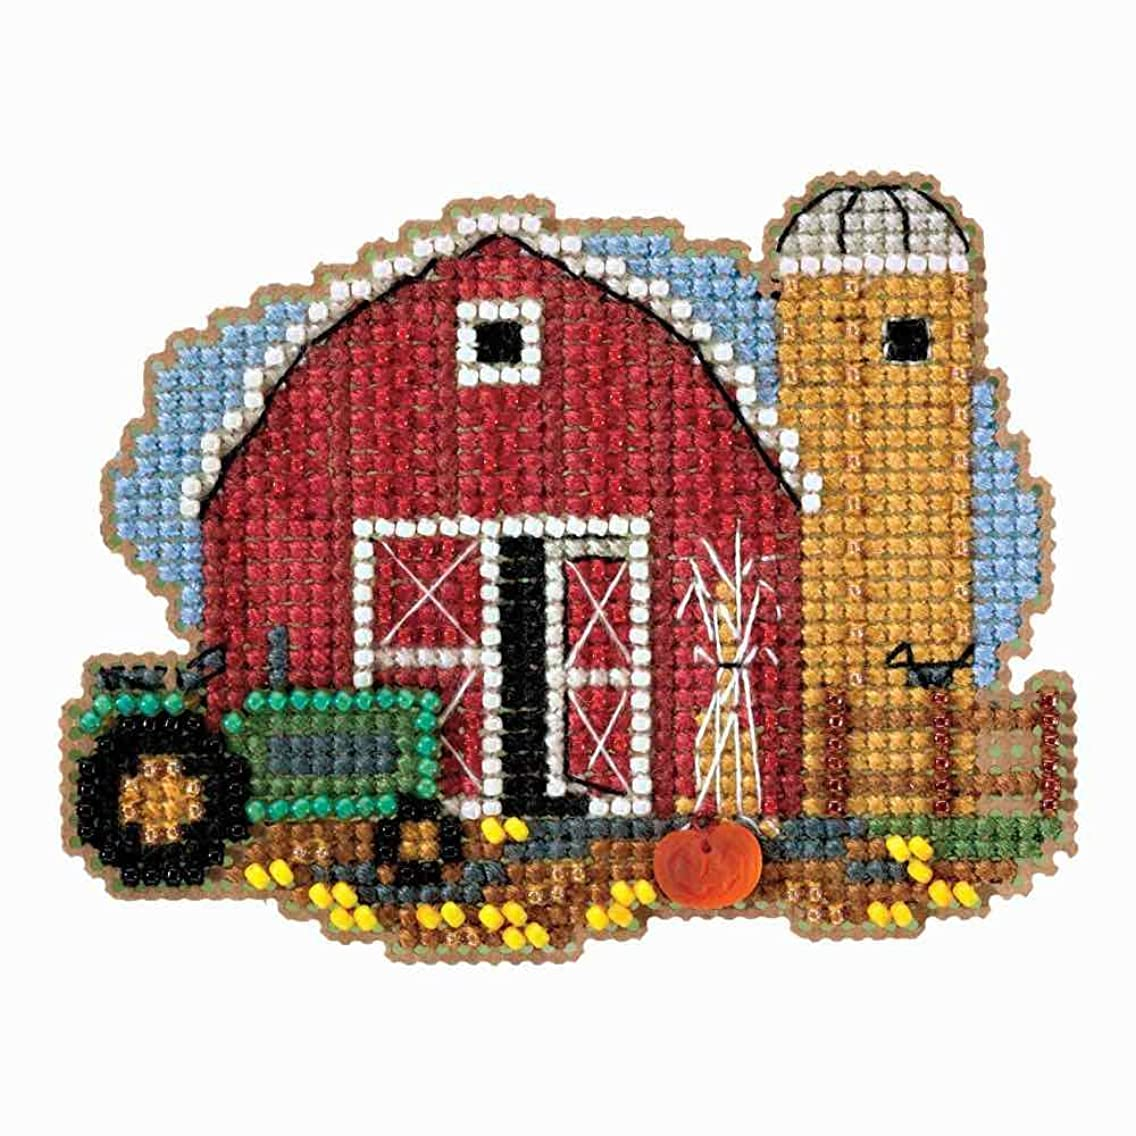 Mill Hill Harvest Barn Beaded Counted Cross Stitch Ornament Kit 2018 Autumn Harvest MH181821